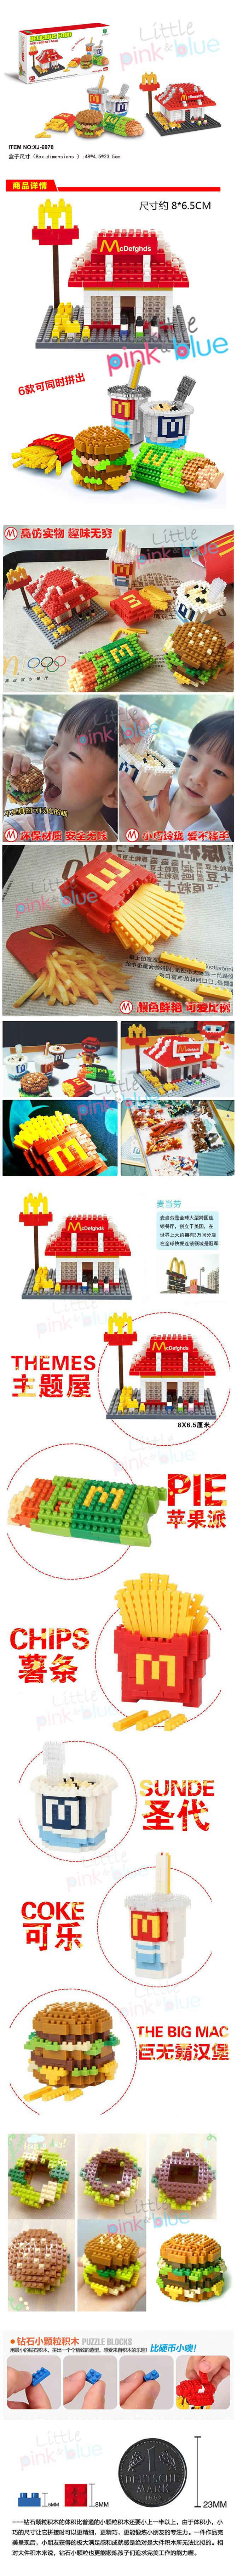 McDonalds Food Icons Nano Block Collection Limited Edition 6 in1